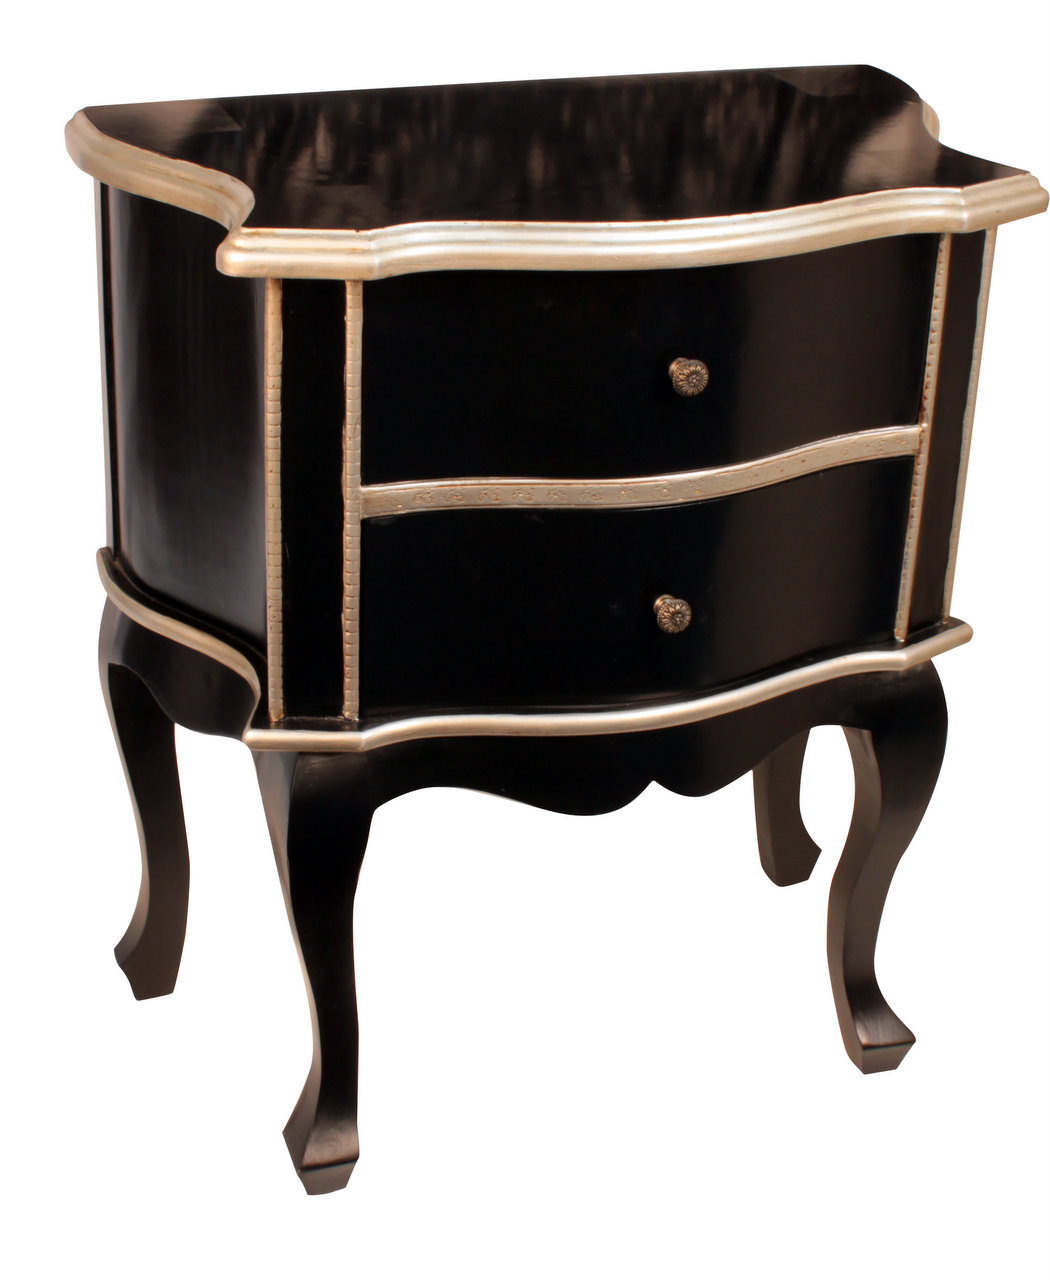 Black side table with drawer - Black Wooden Two Drawer Side Table With Silver Champagne Trim Forever Furnishings